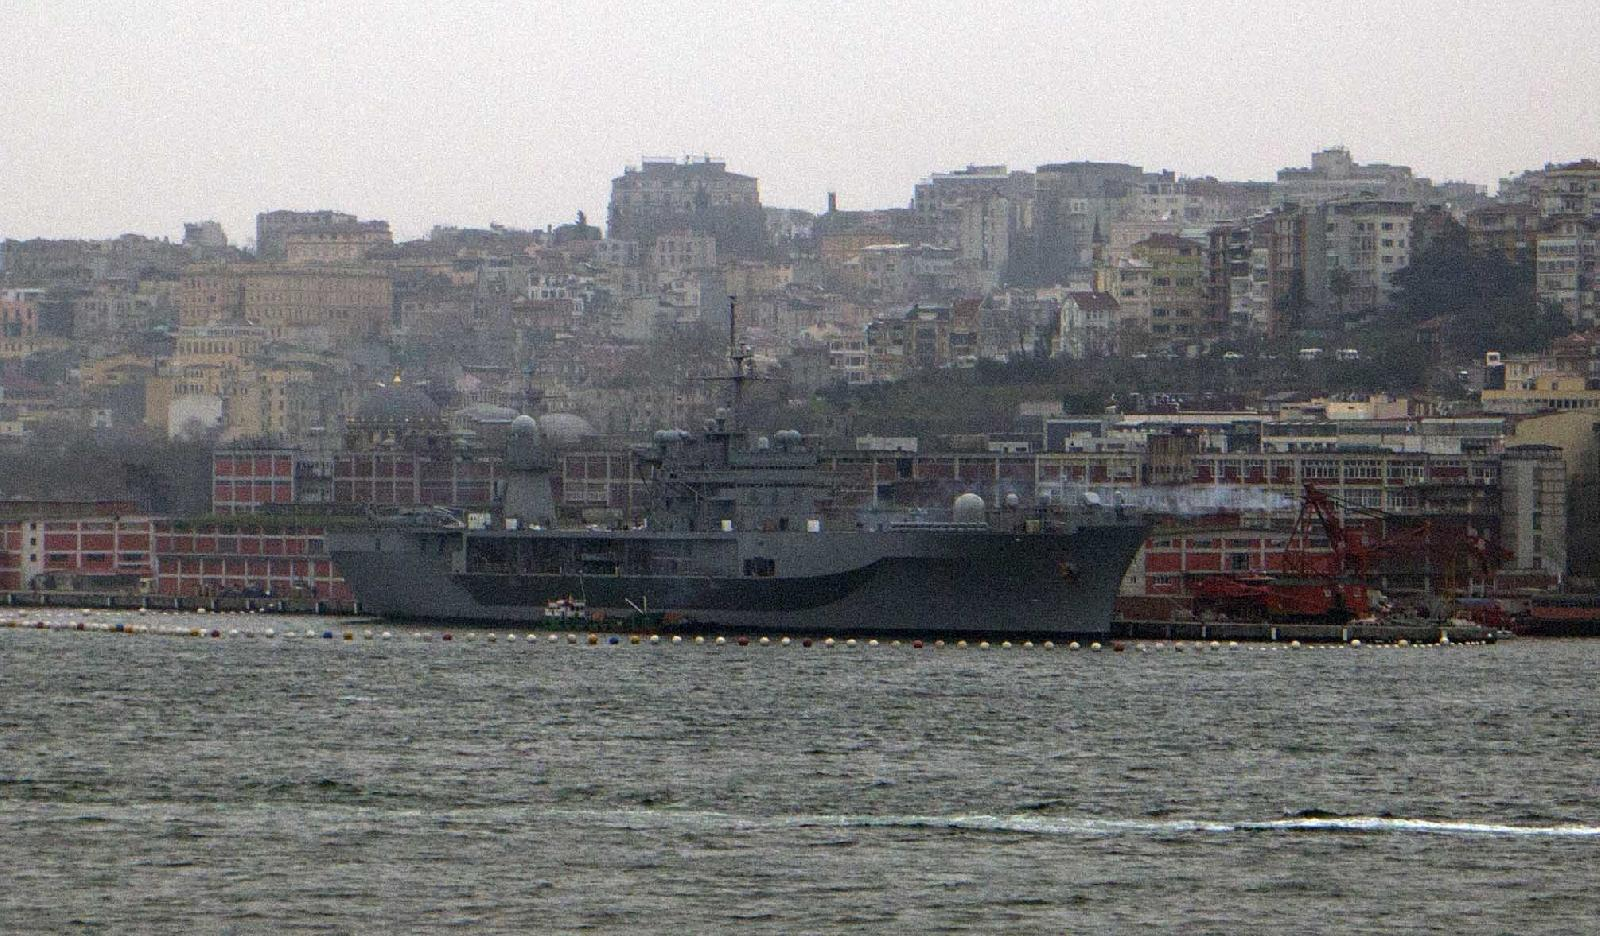 USS Mount Whitney Arrives in Istanbul